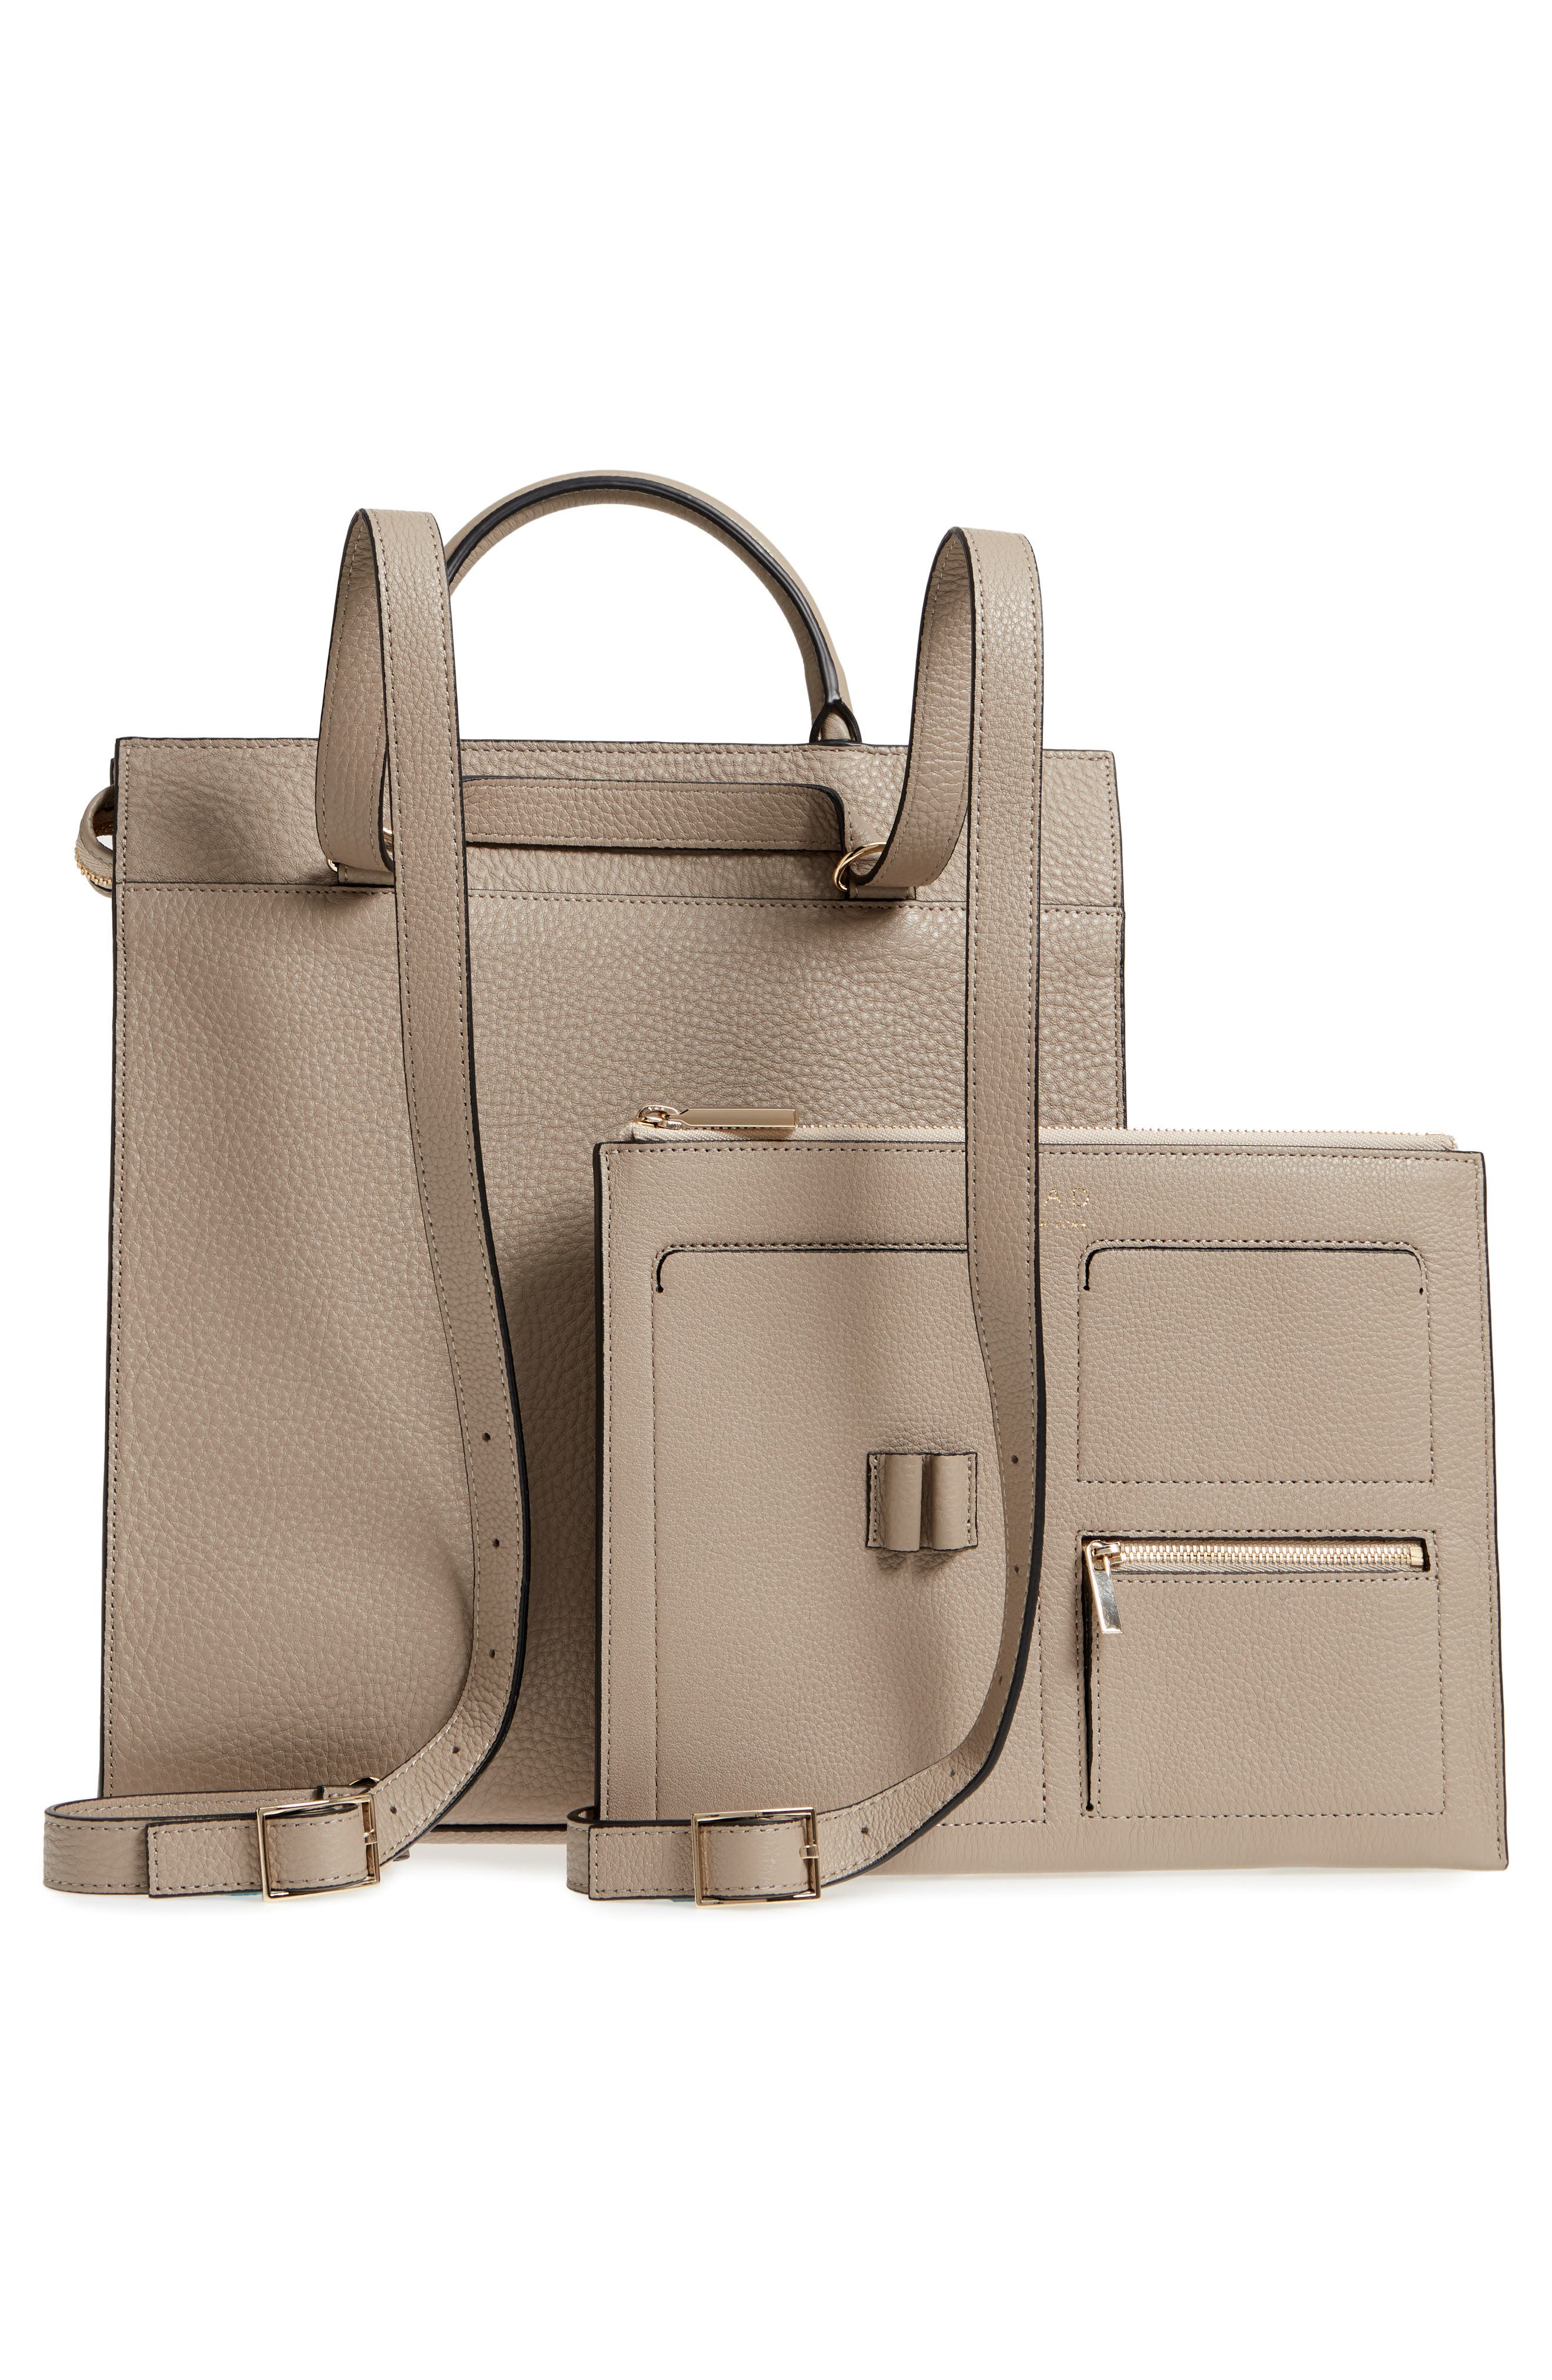 Arc Leather Backpack,                             Alternate thumbnail 3, color,                             Taupe